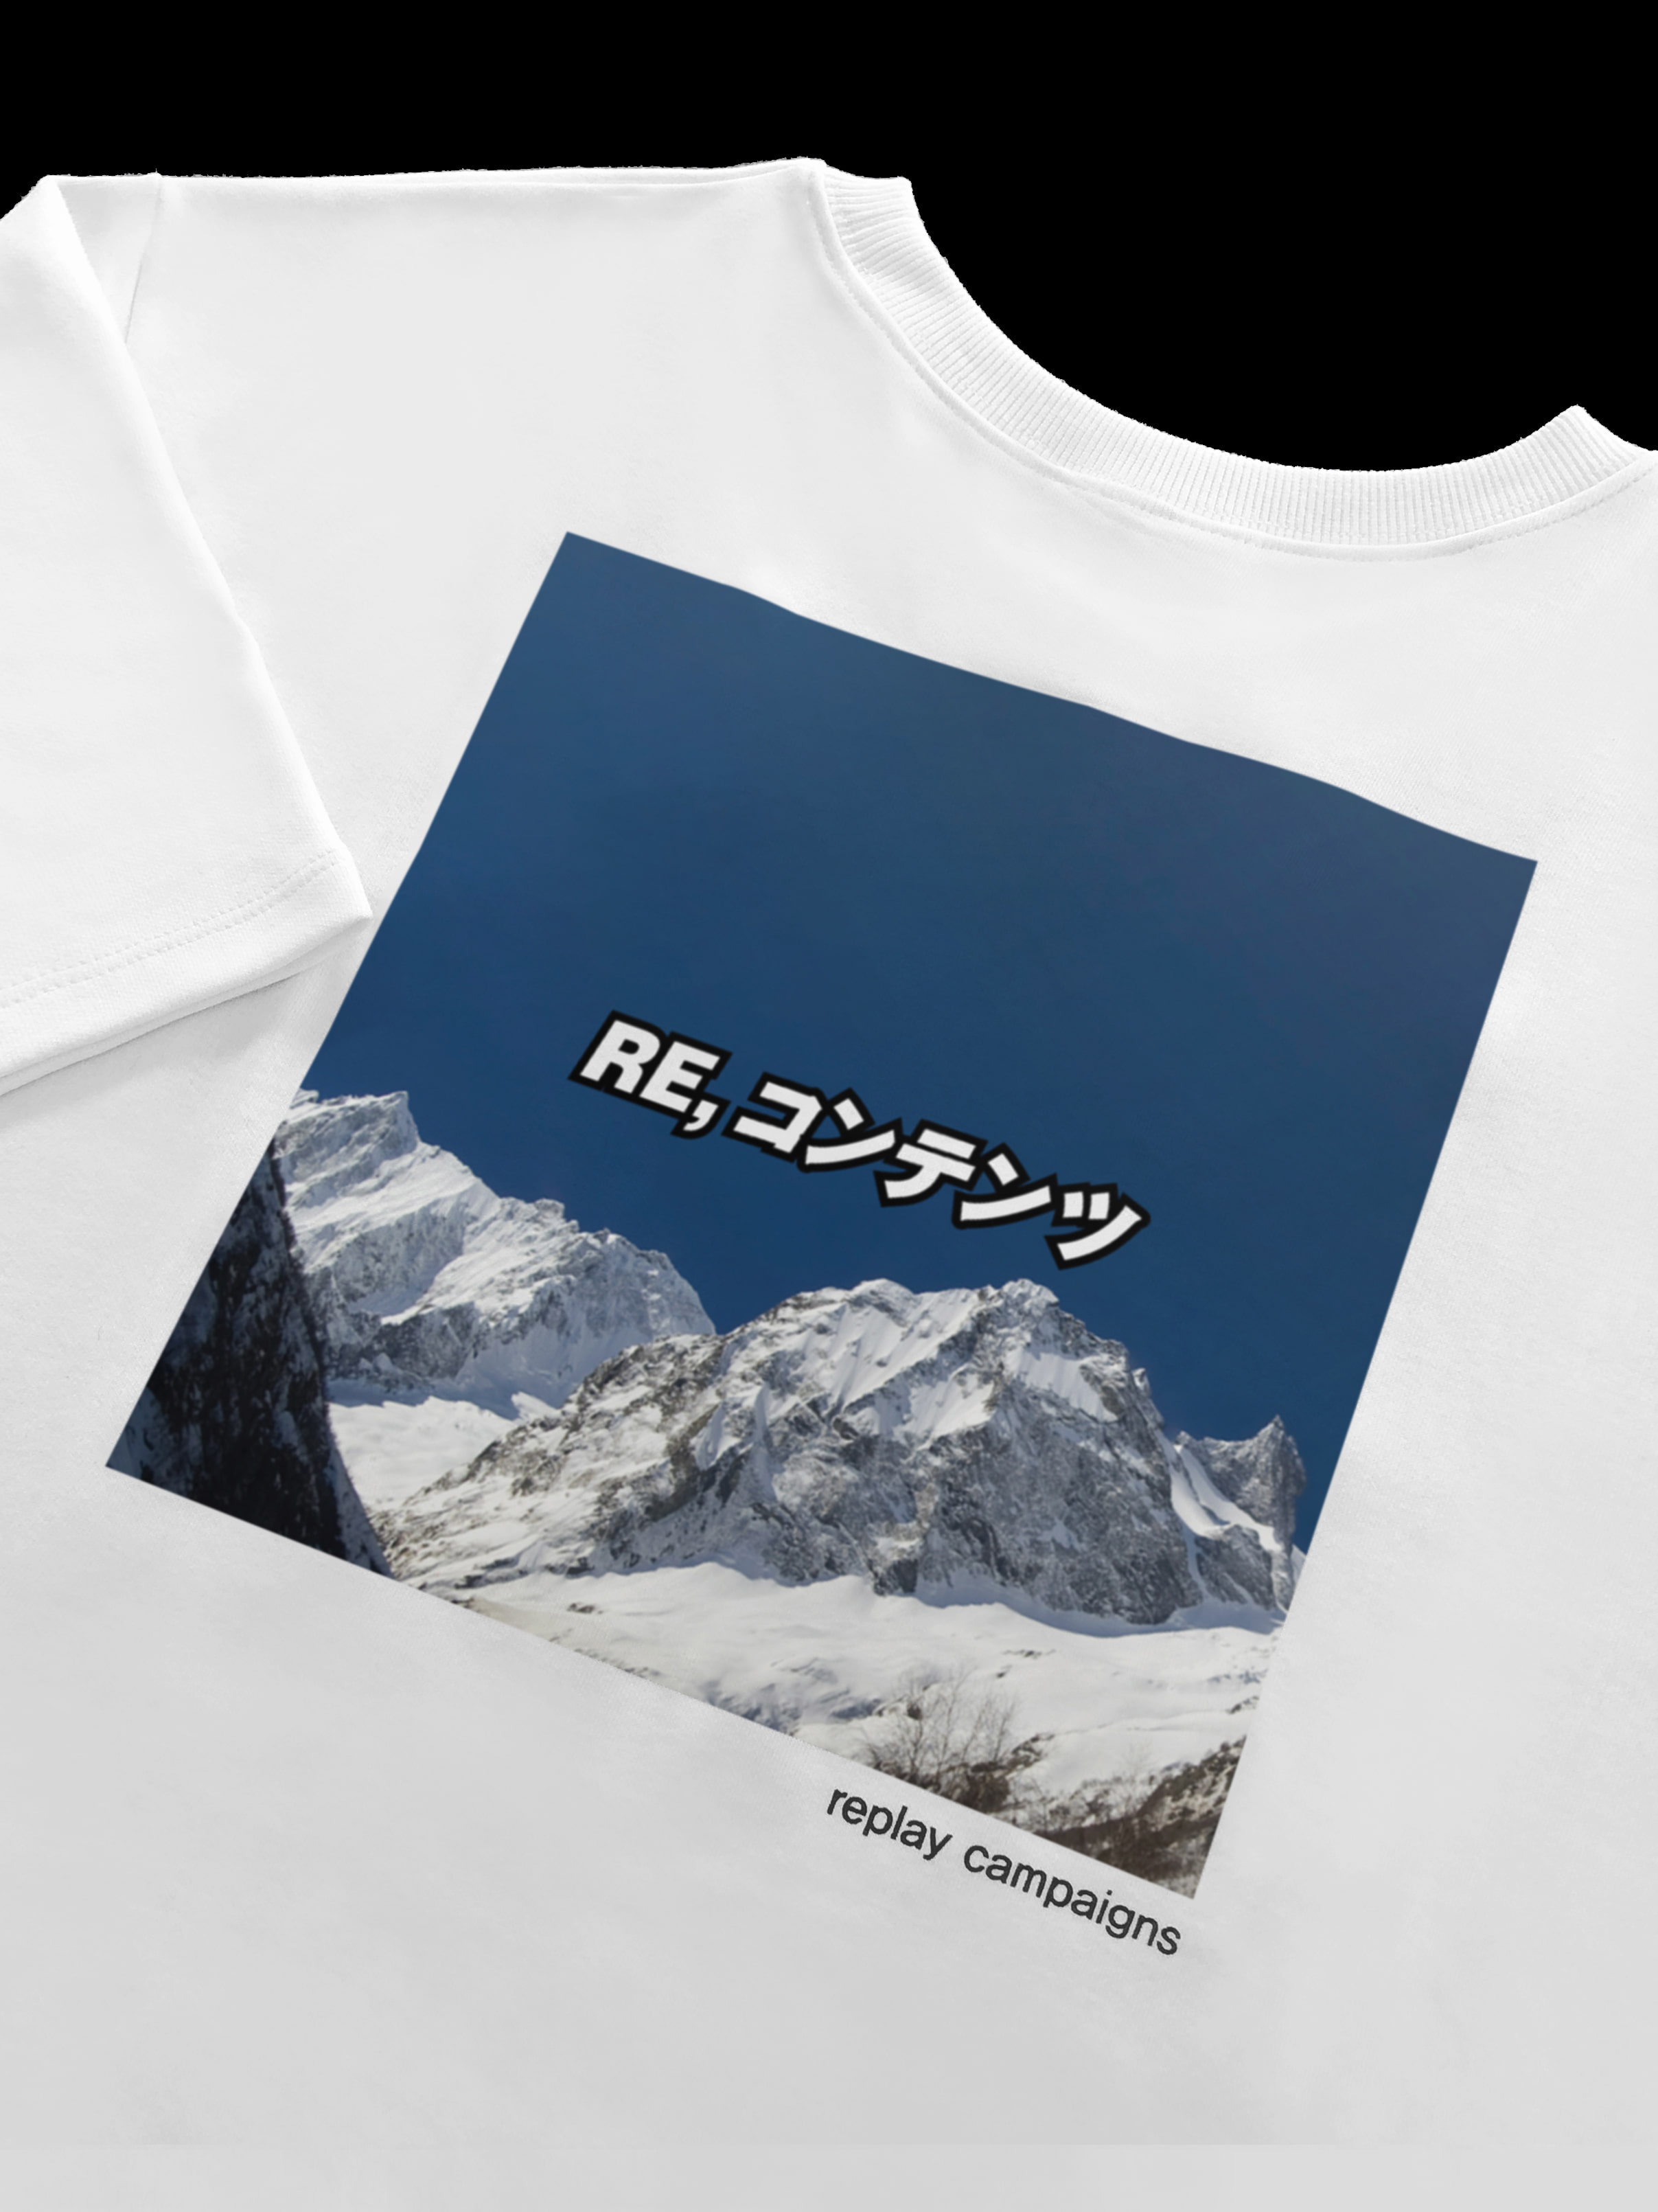 new replay campaign 1/2 tee (dark blue)